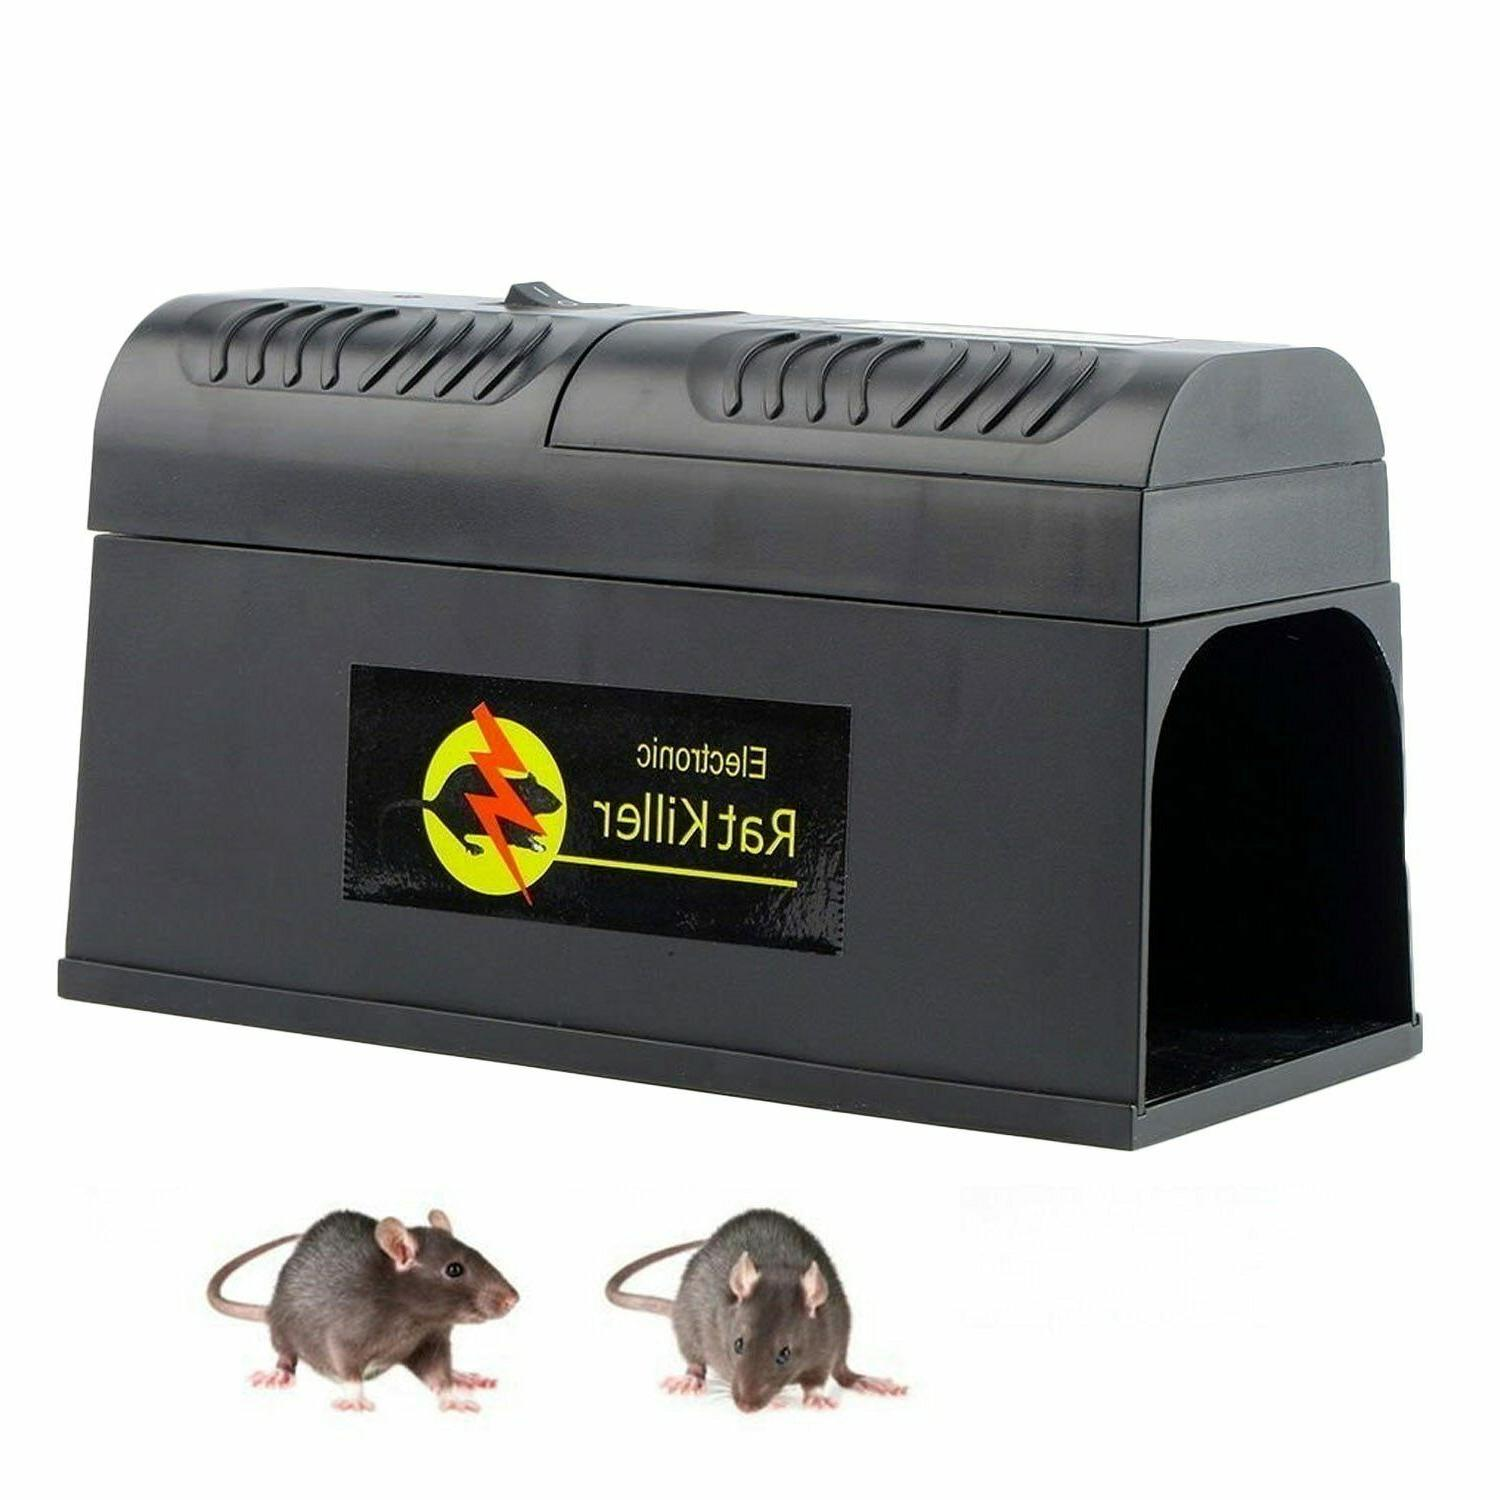 Electric Rat Rodent Killer For Serious Pest Control